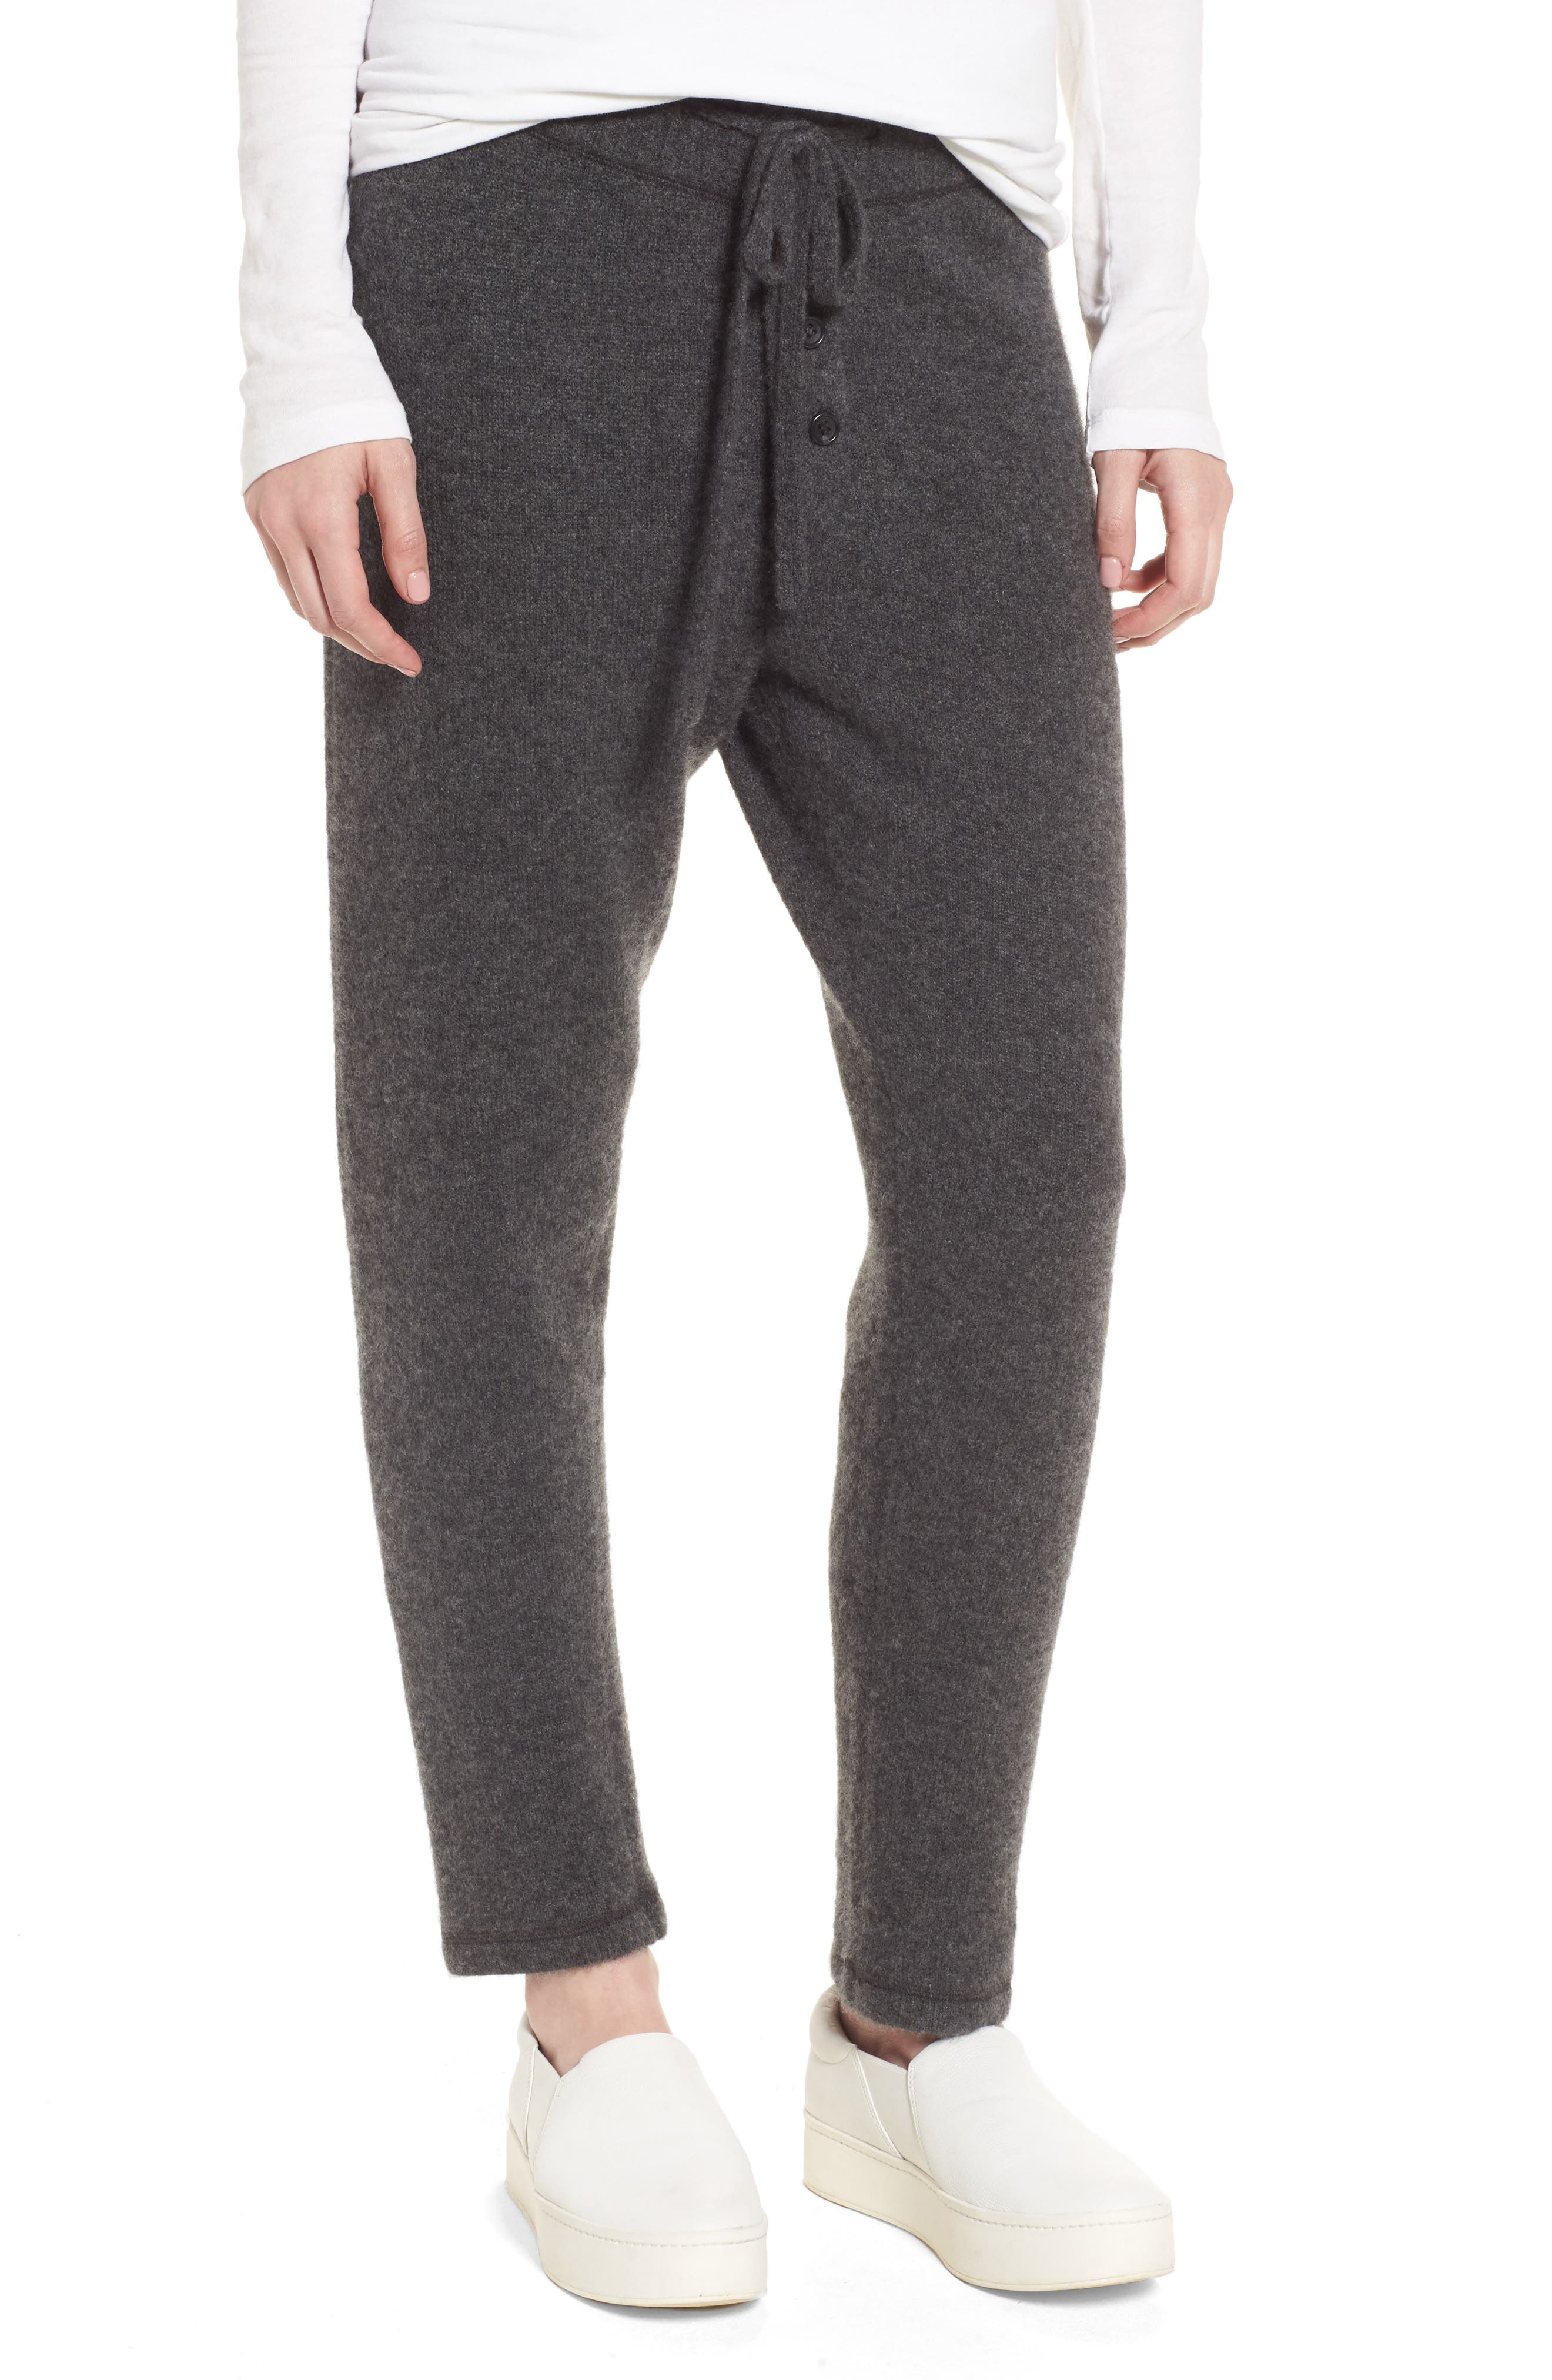 Brushed Cashmere Sweatpants,                         Main,                         color, 069